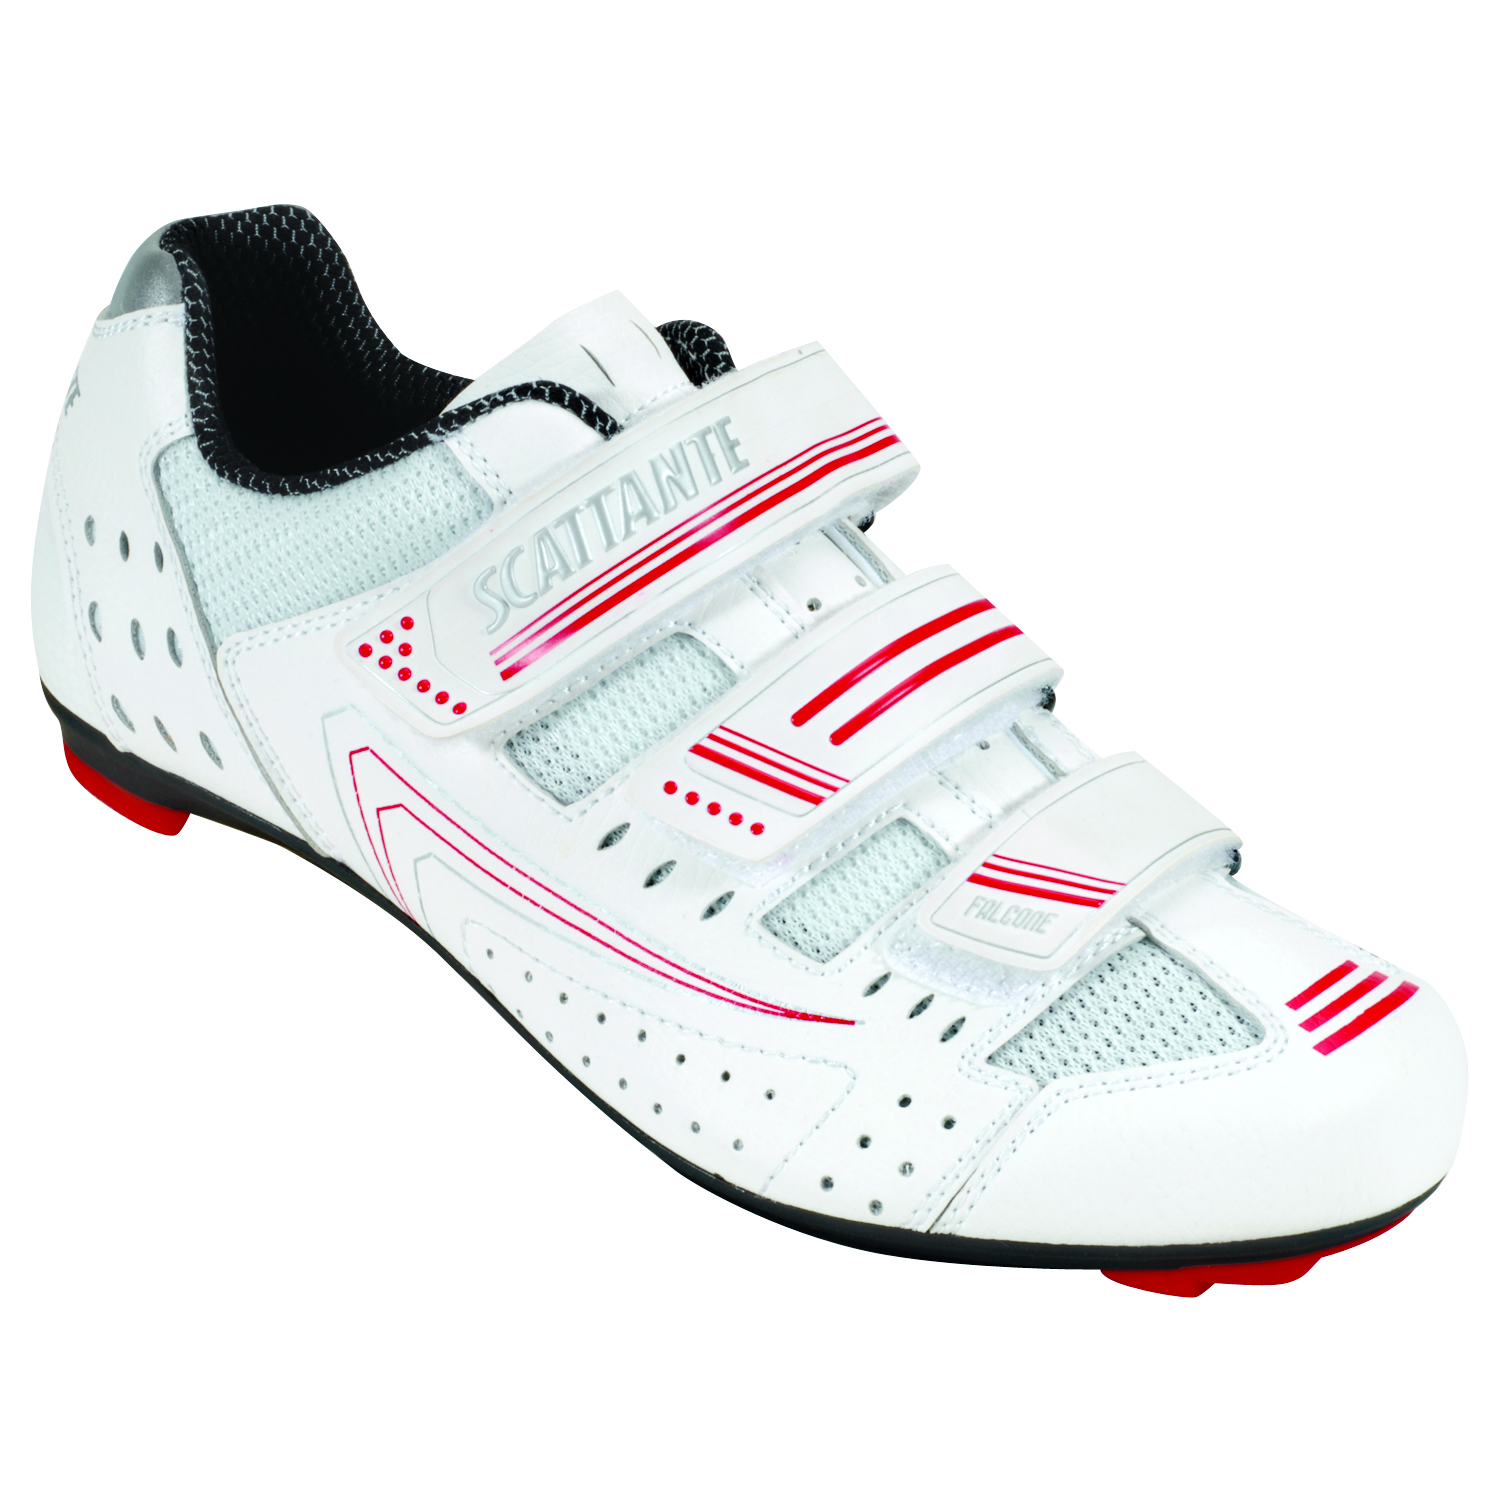 Puts Best Foot Forward With New Men s and Women s Cycling Shoes